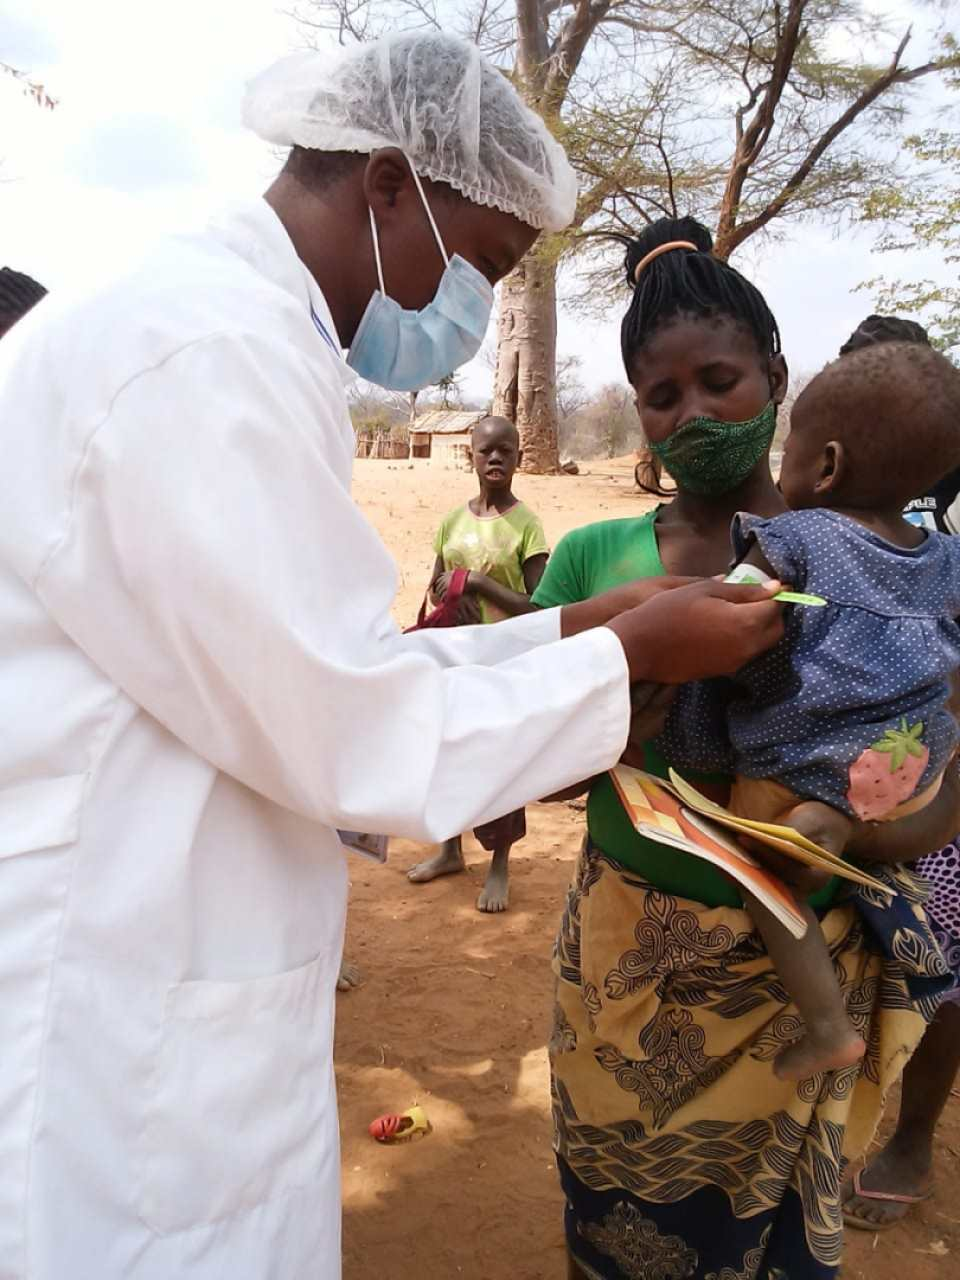 A health care worker screening a young child for malnutrition